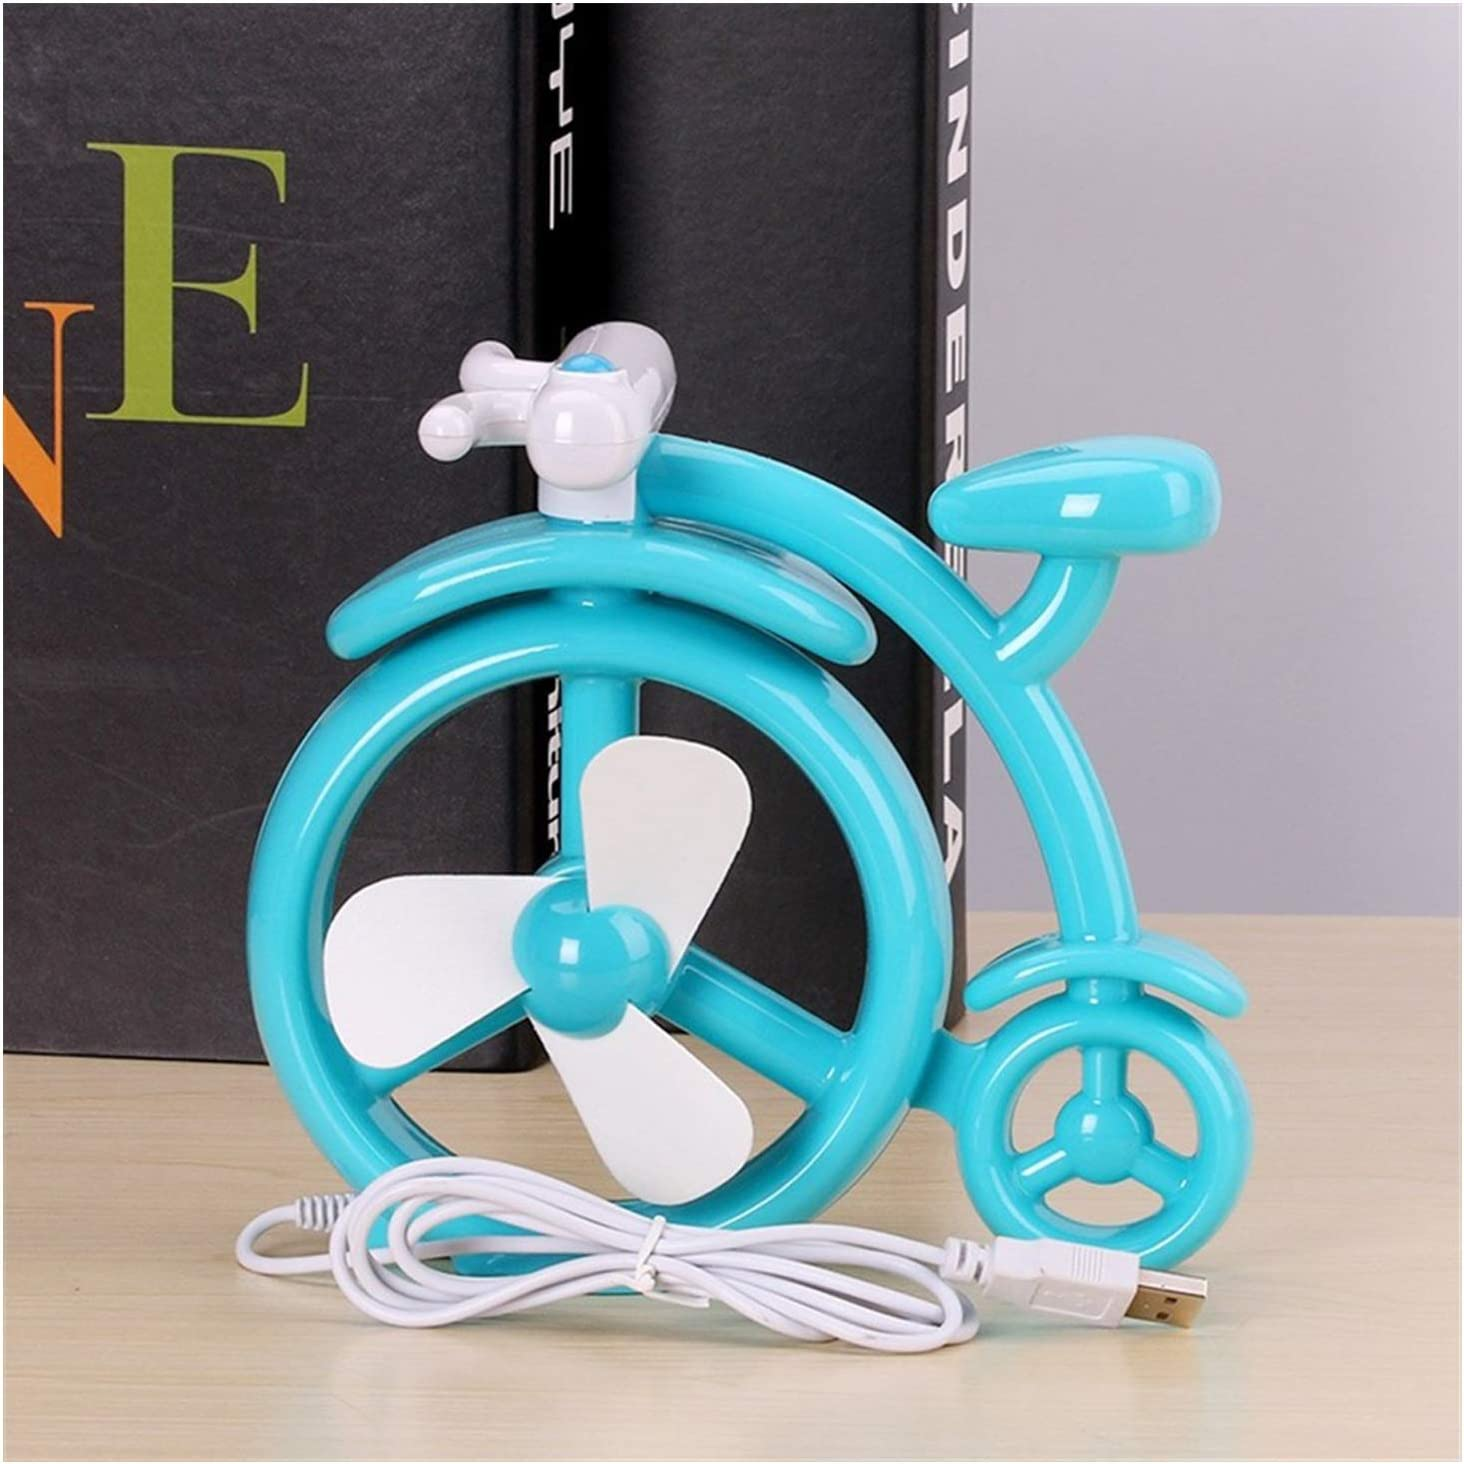 Color : Blue Air Cooler Bicycle Design Mini Fan USB Handheld Portable 3 Leaf Electric Fan Outdoor Cooling Personal Fans